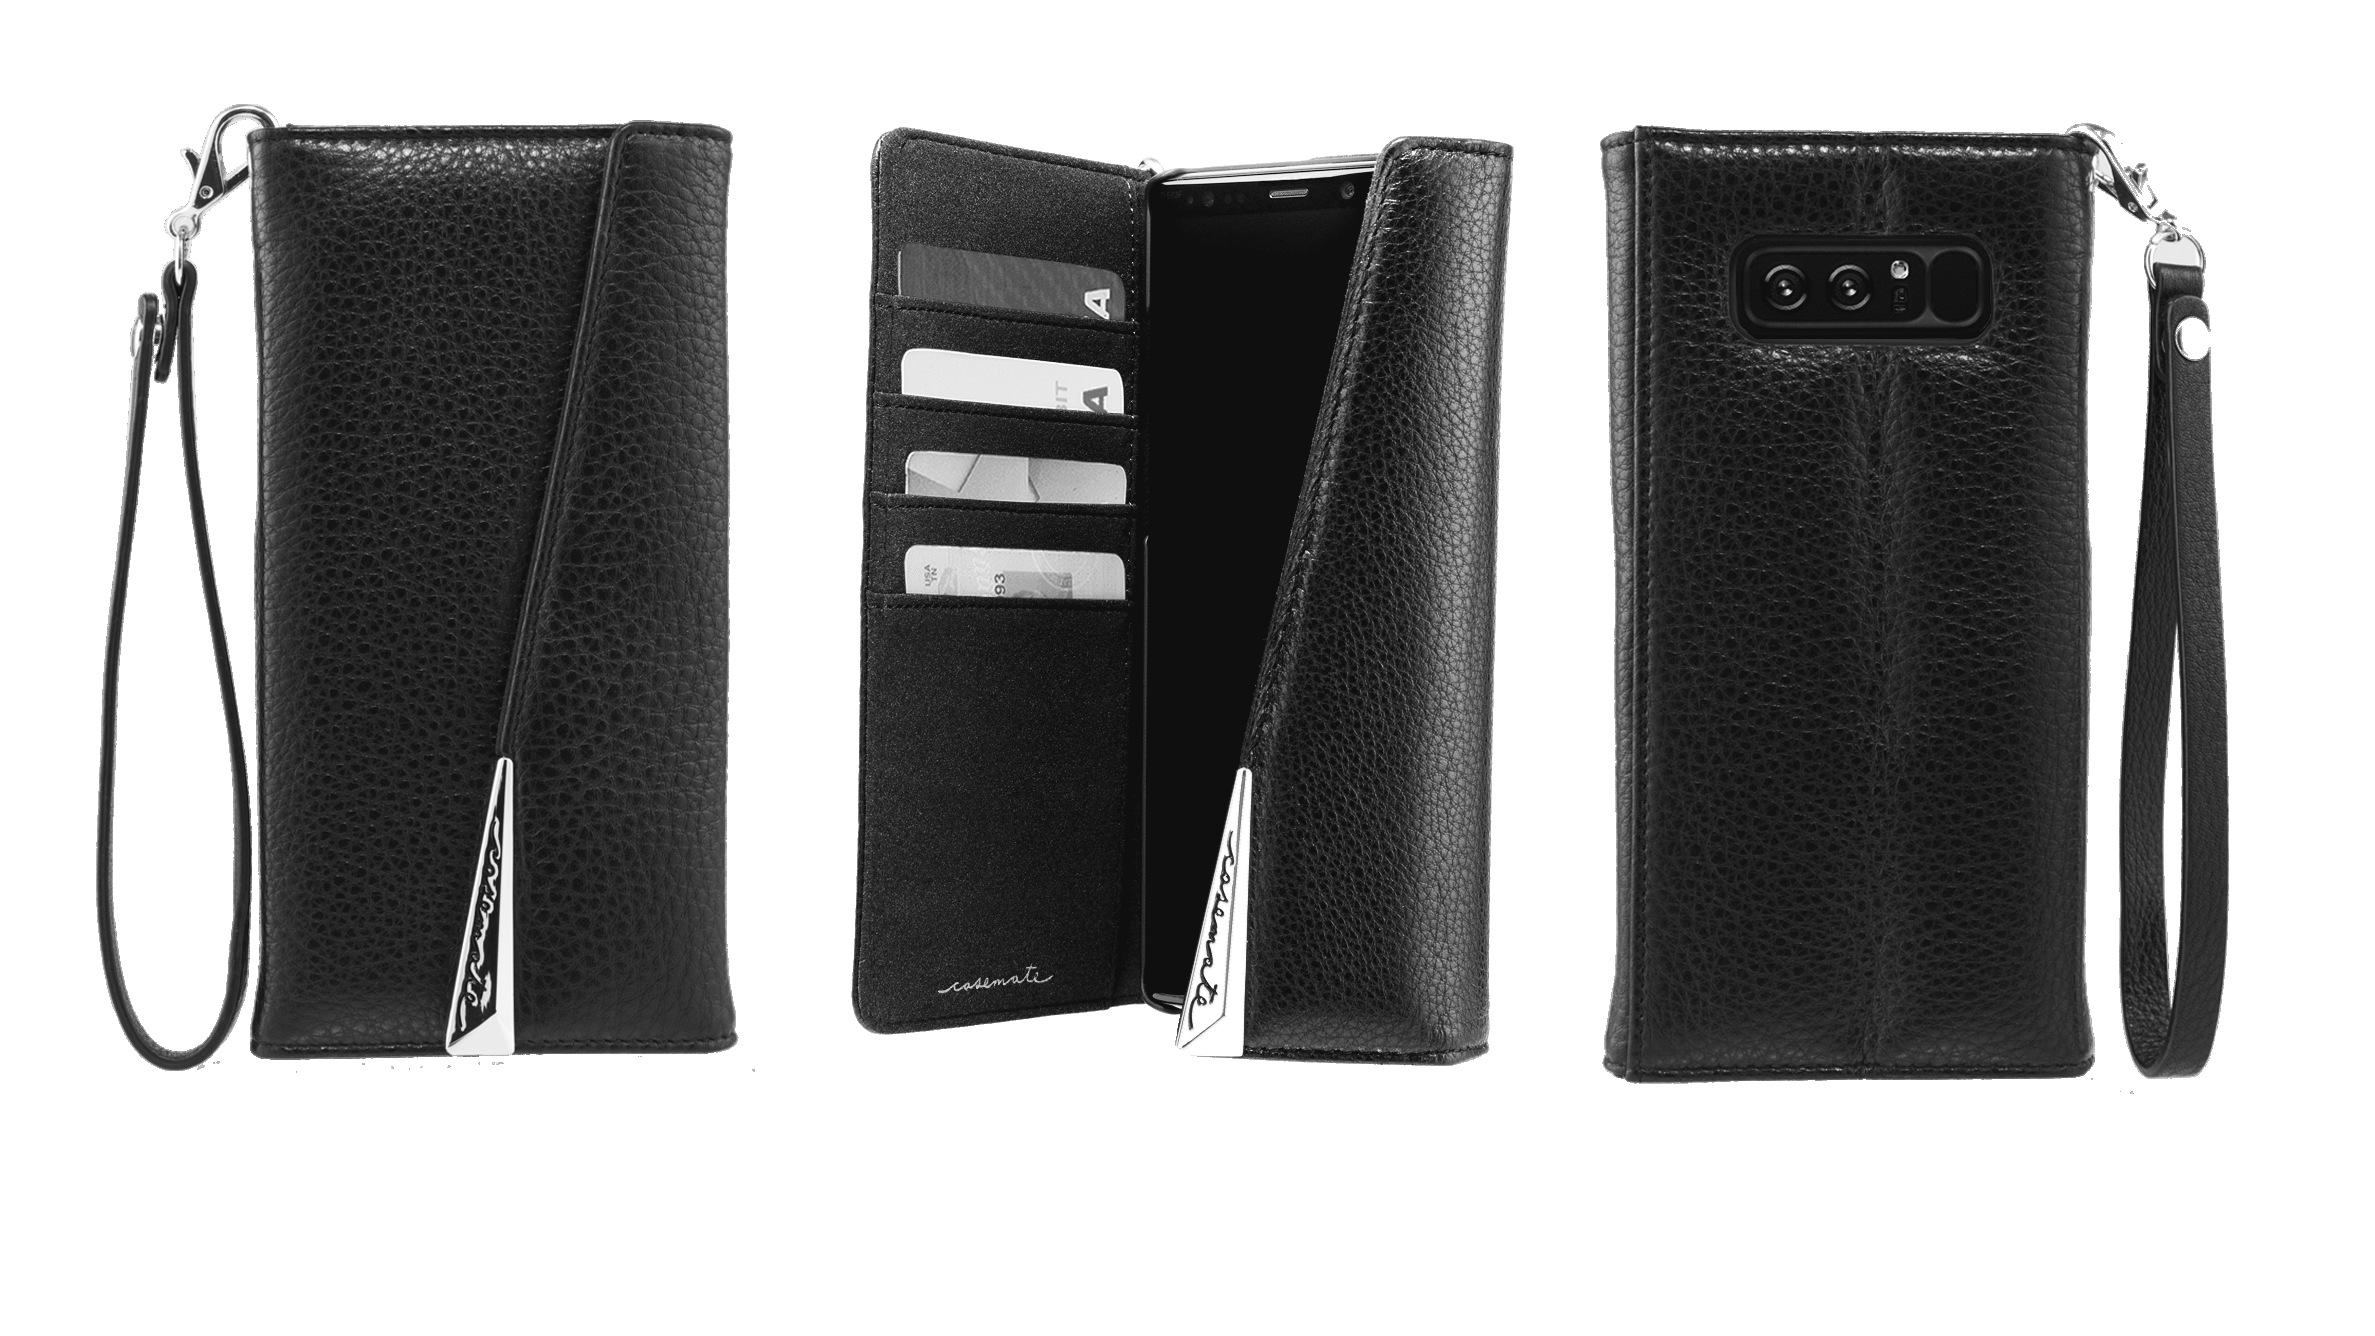 Clip folio cover. The best galaxy note